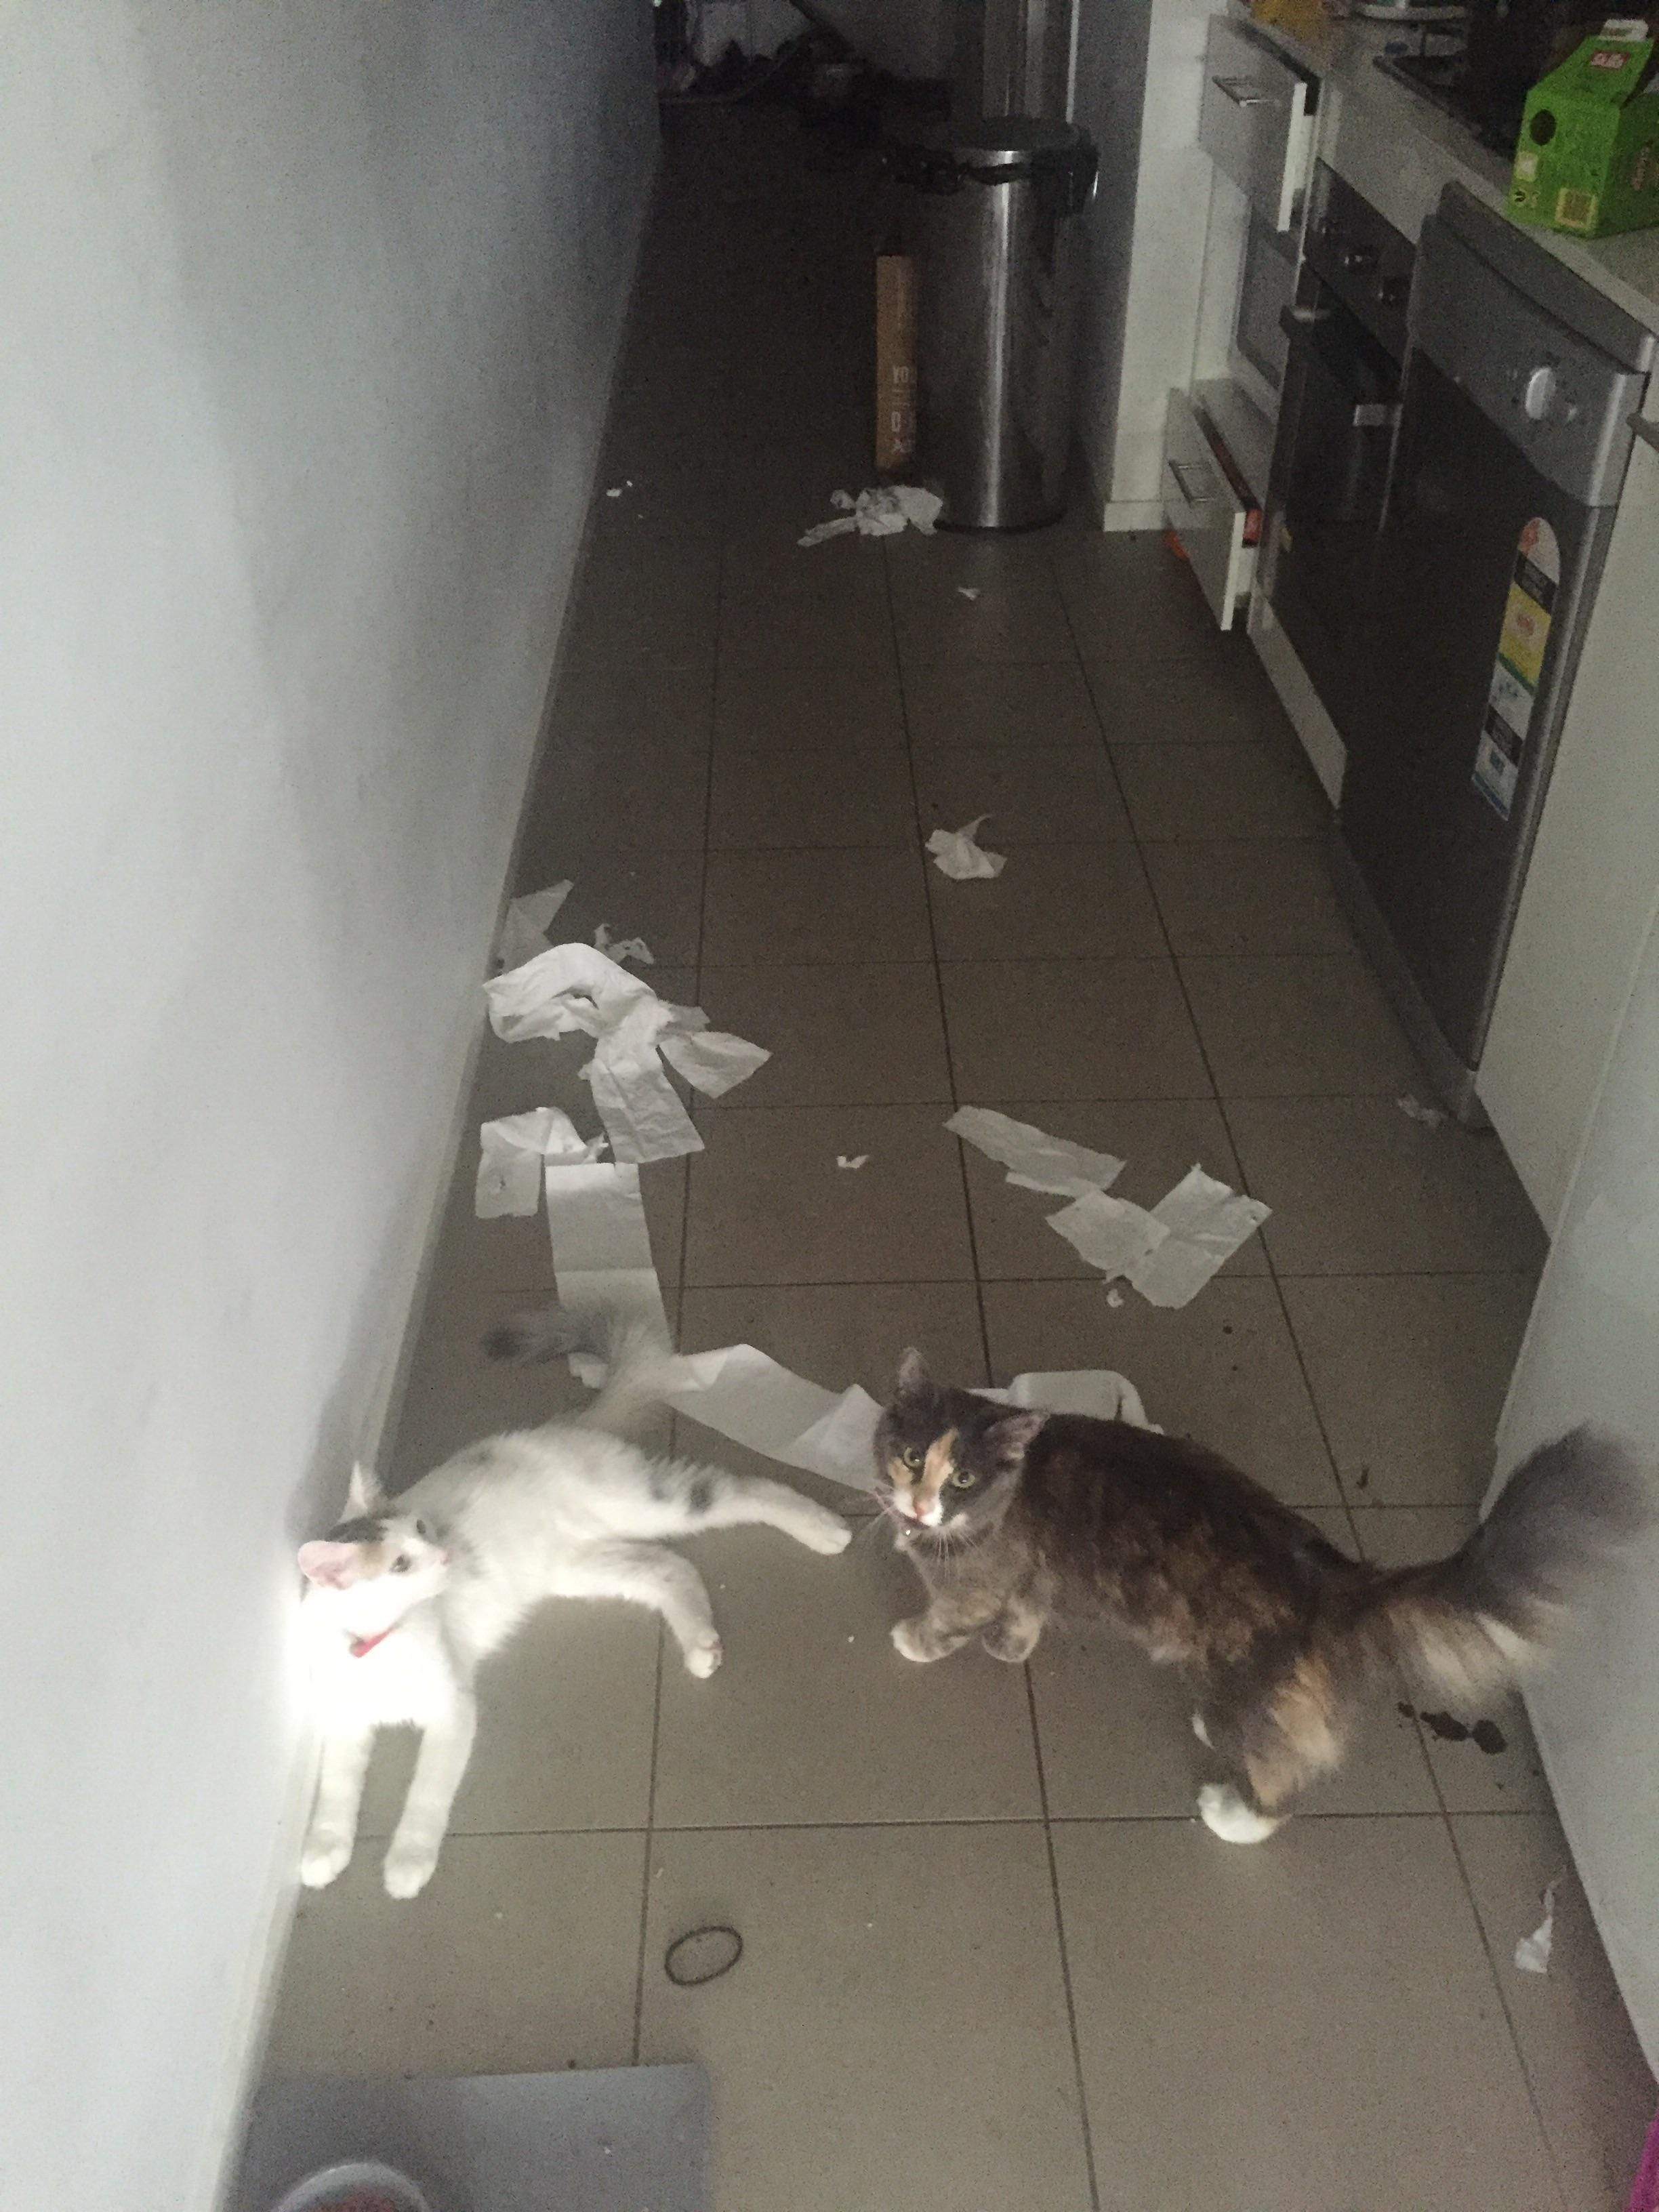 When you have cats and forget to close the bathroom door....